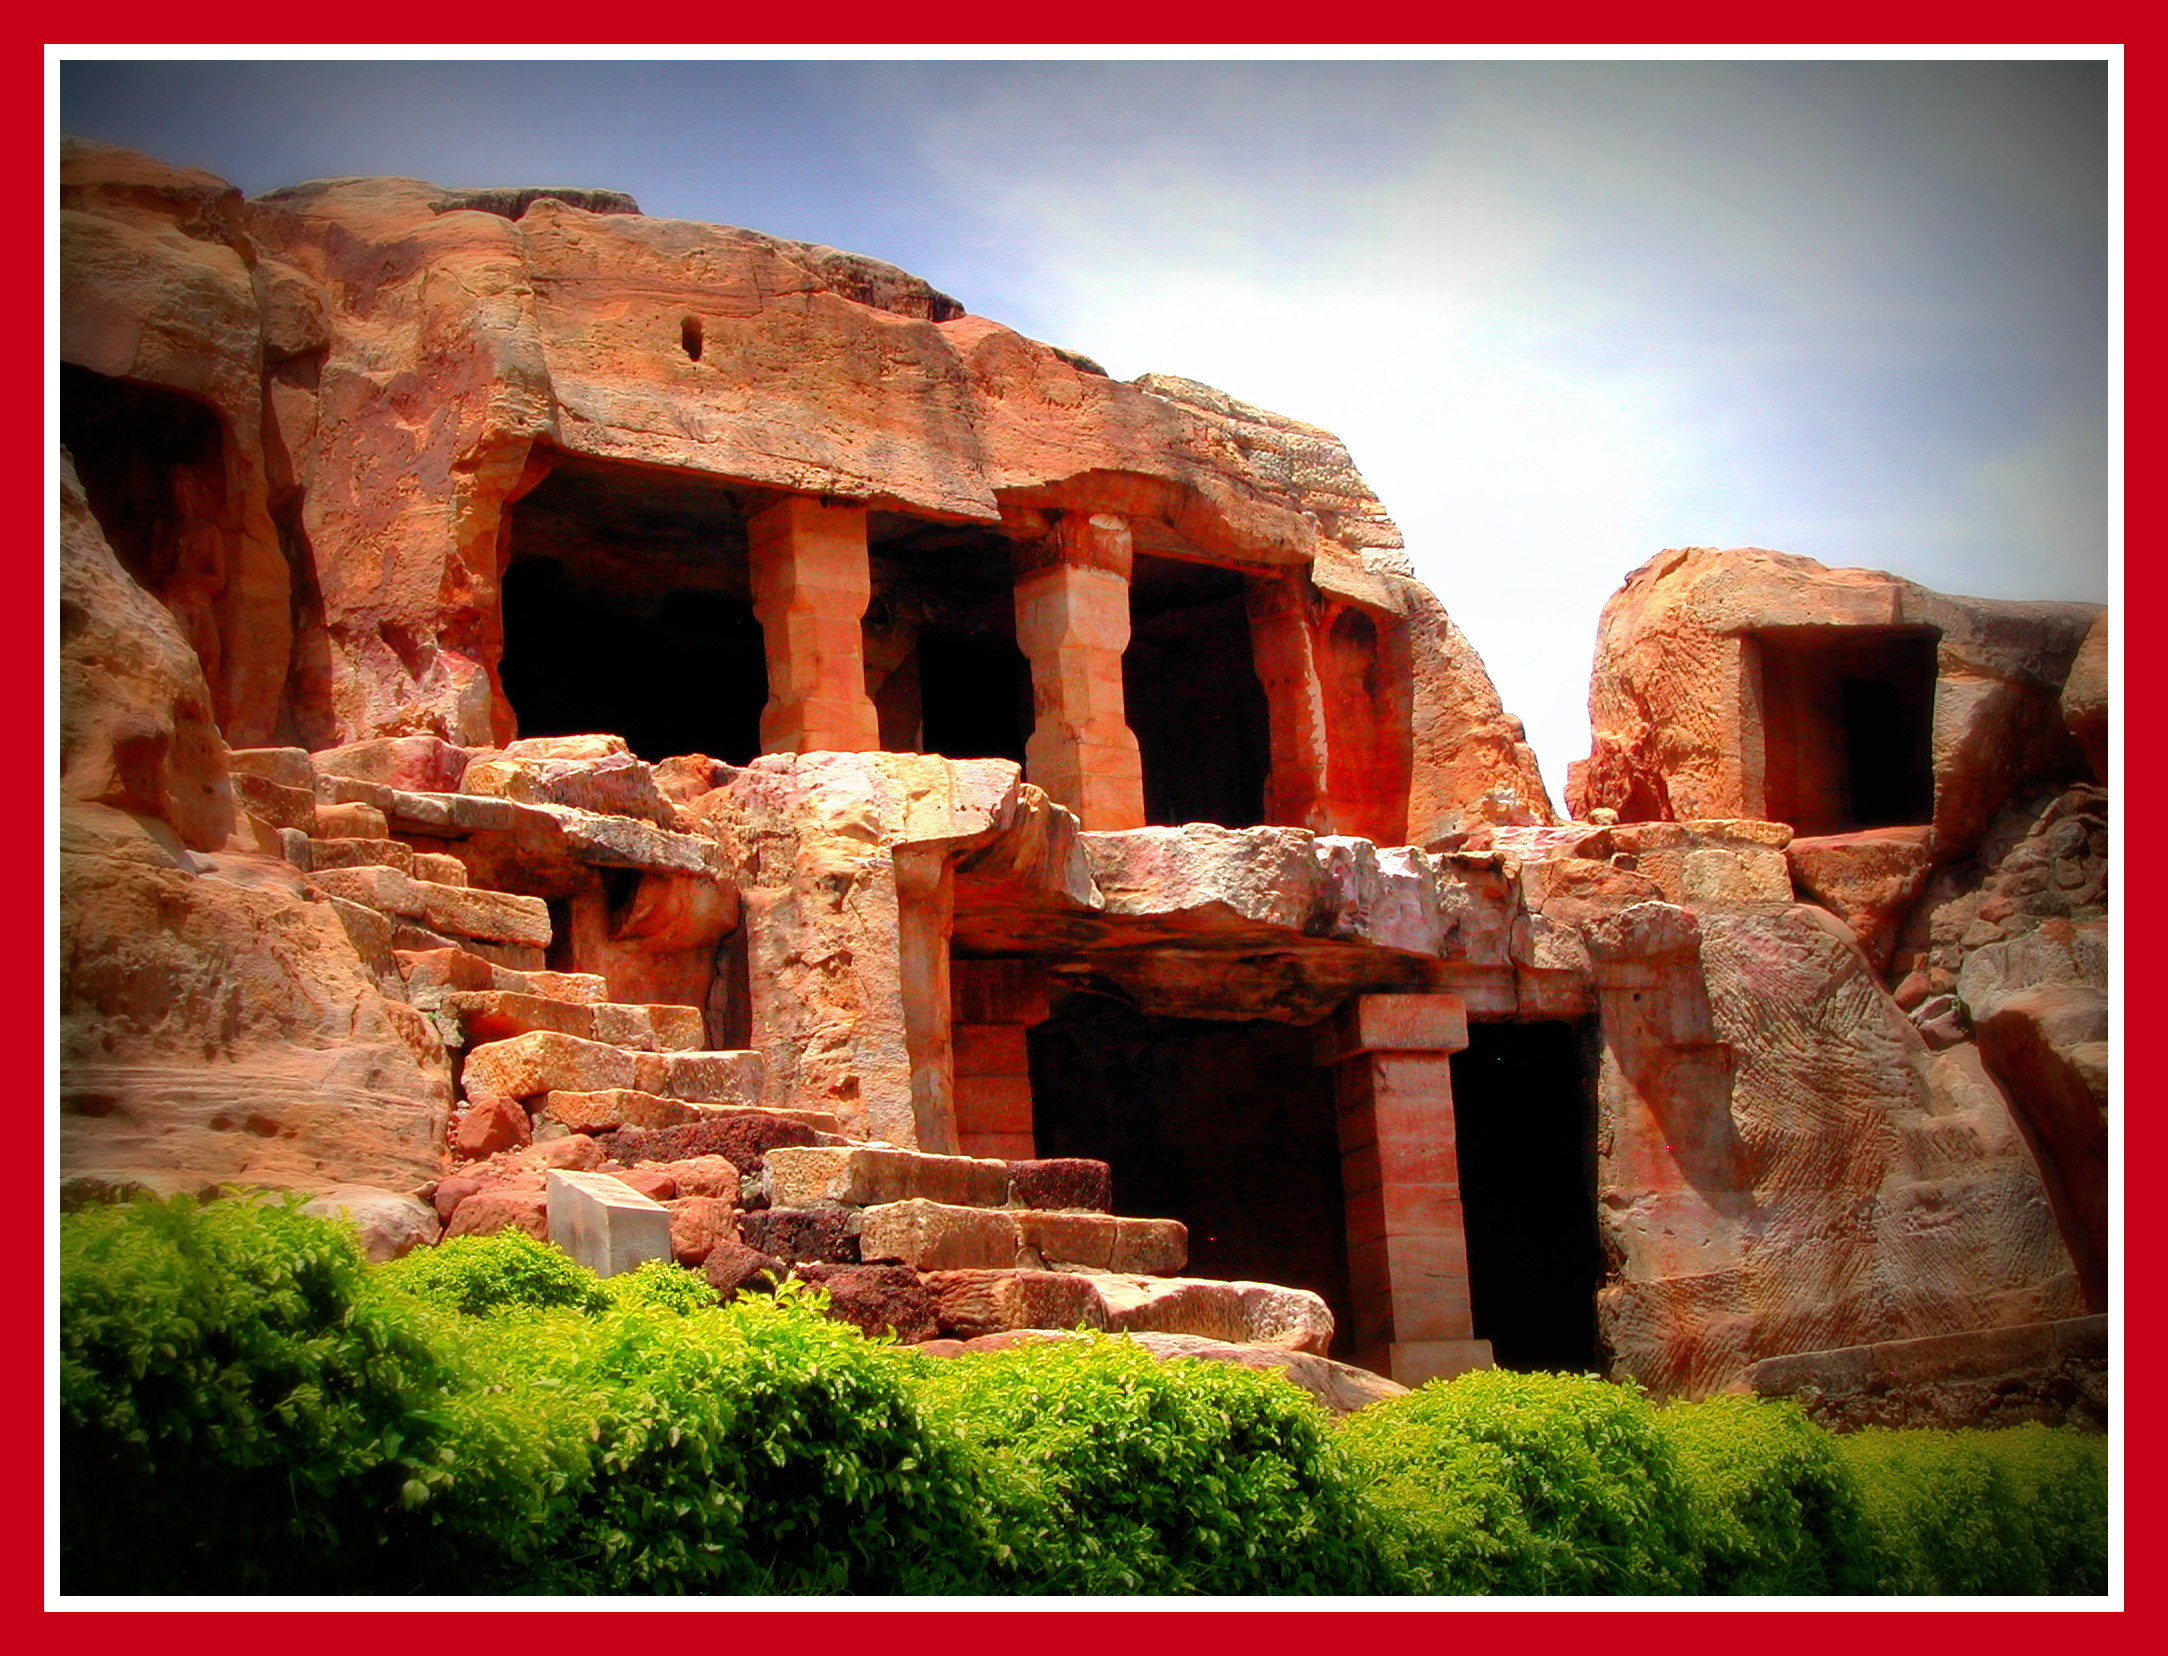 the caves of udayagiri and khandagiri Udayagiri houses a total of 18 caves while khandagiri bears as many as 15 caves in the inscriptions, udayagiri and khandagiri caves are referred as lena or leṇa if you ask about orissa udaygiri , ranigumpha, a double storied monastery, here is considered as the most important cave among all these.